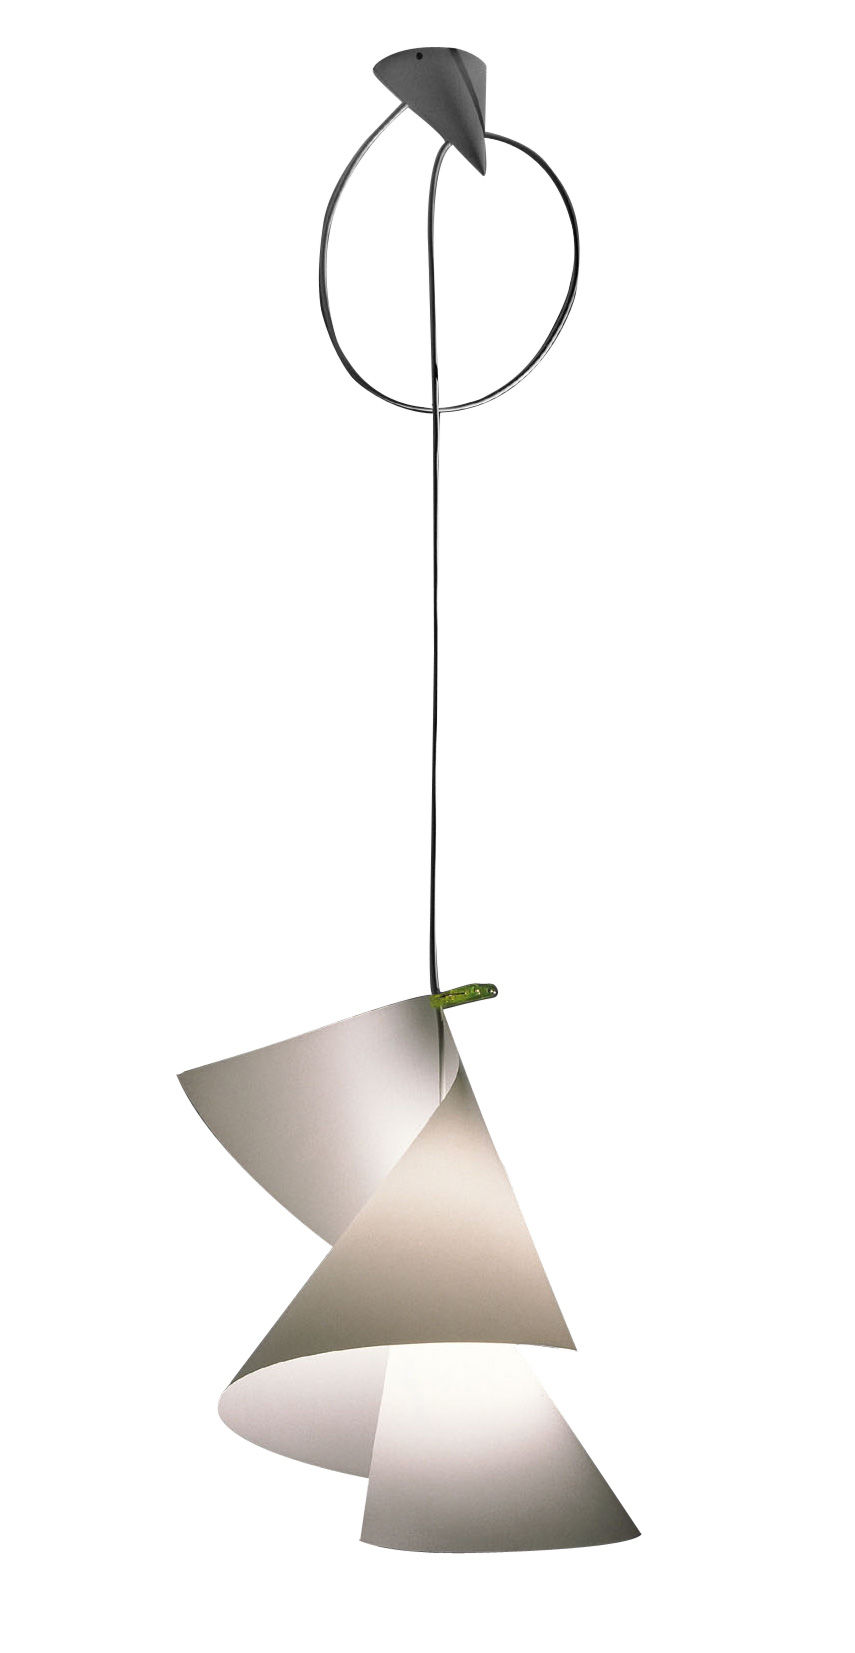 Luminaire - Suspensions - Suspension WillyDilly - Ingo Maurer - Blanc translucide - Carton